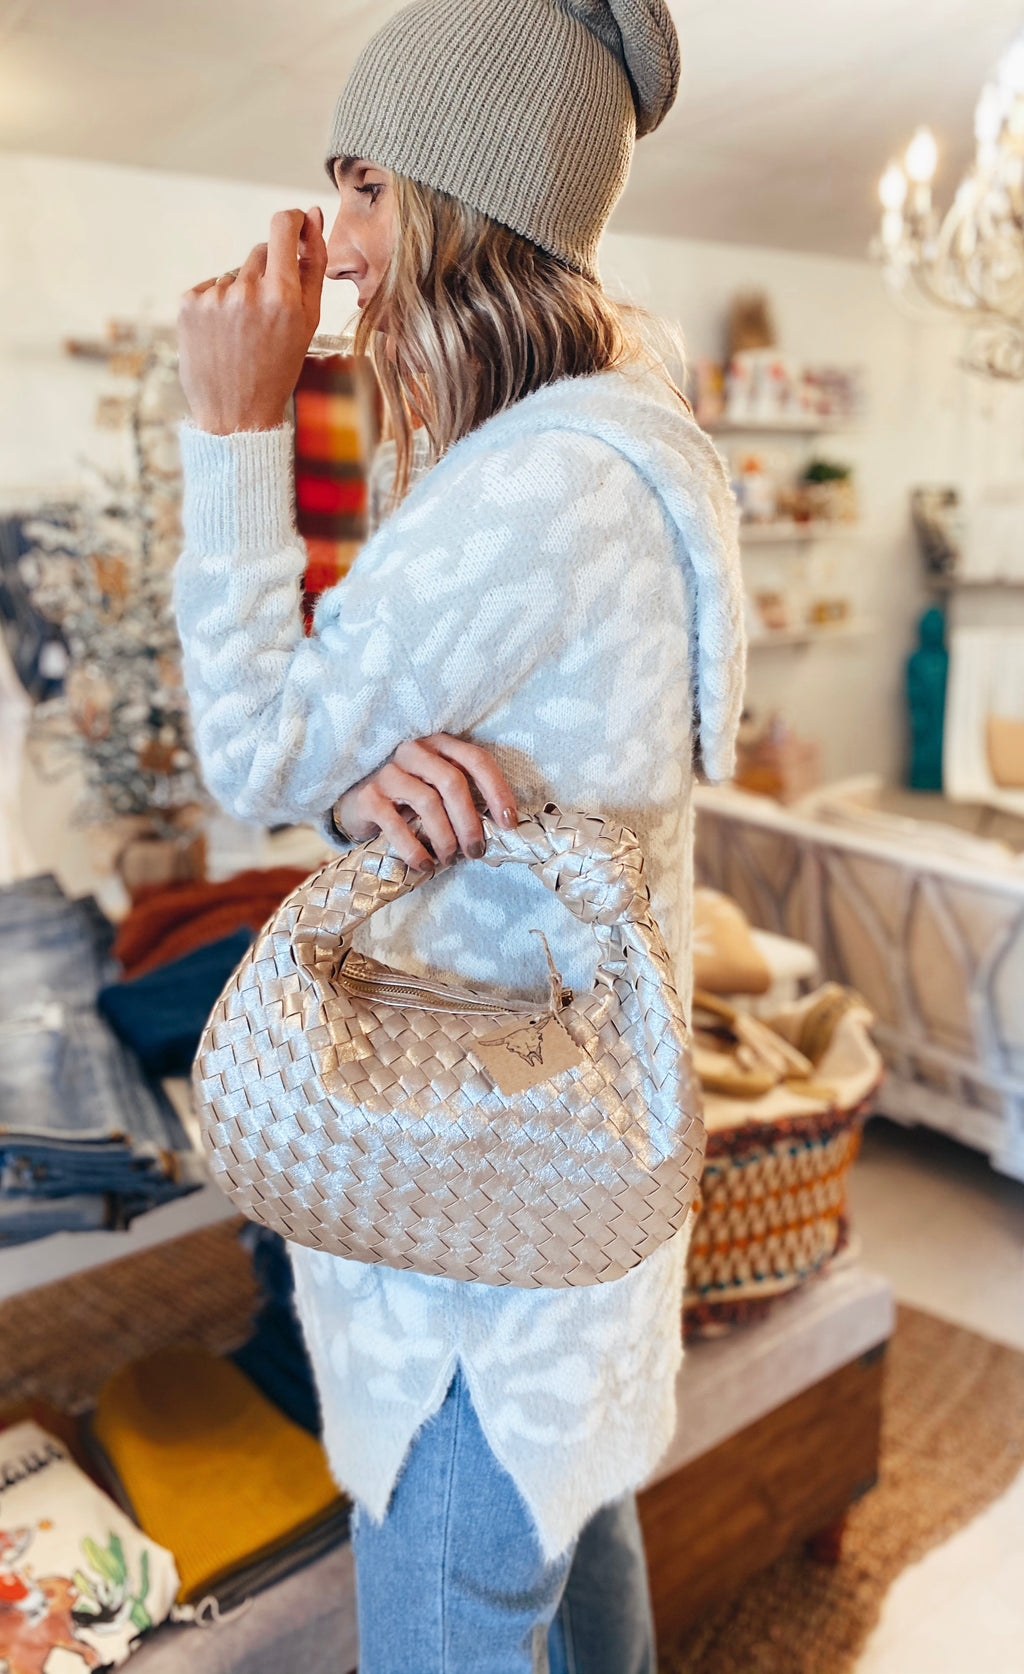 The Champagne Woven Bag